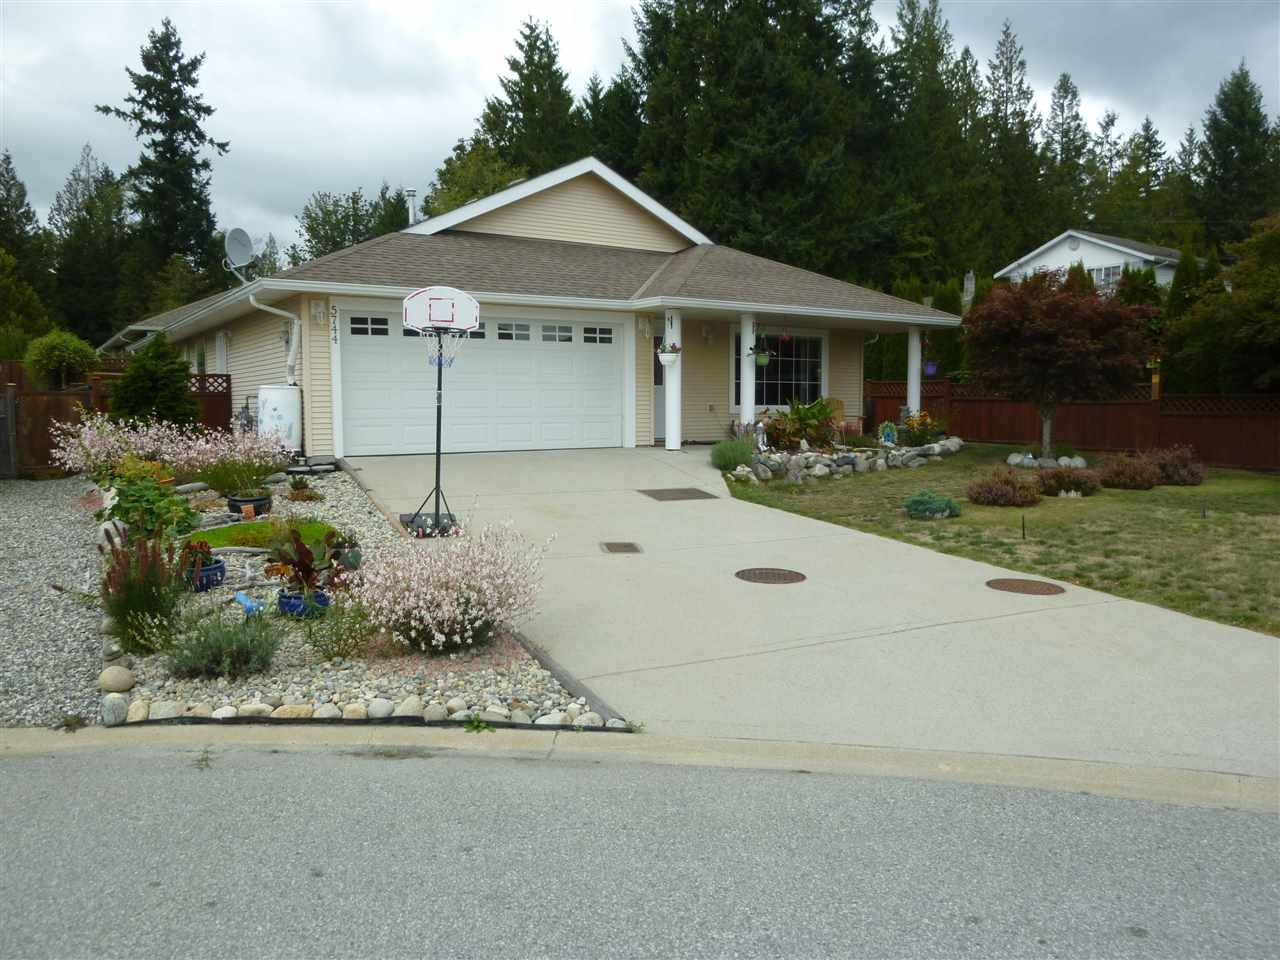 """Main Photo: 5744 EMILY Way in Sechelt: Sechelt District House for sale in """"CASCADE HEIGHTS"""" (Sunshine Coast)  : MLS®# R2400913"""